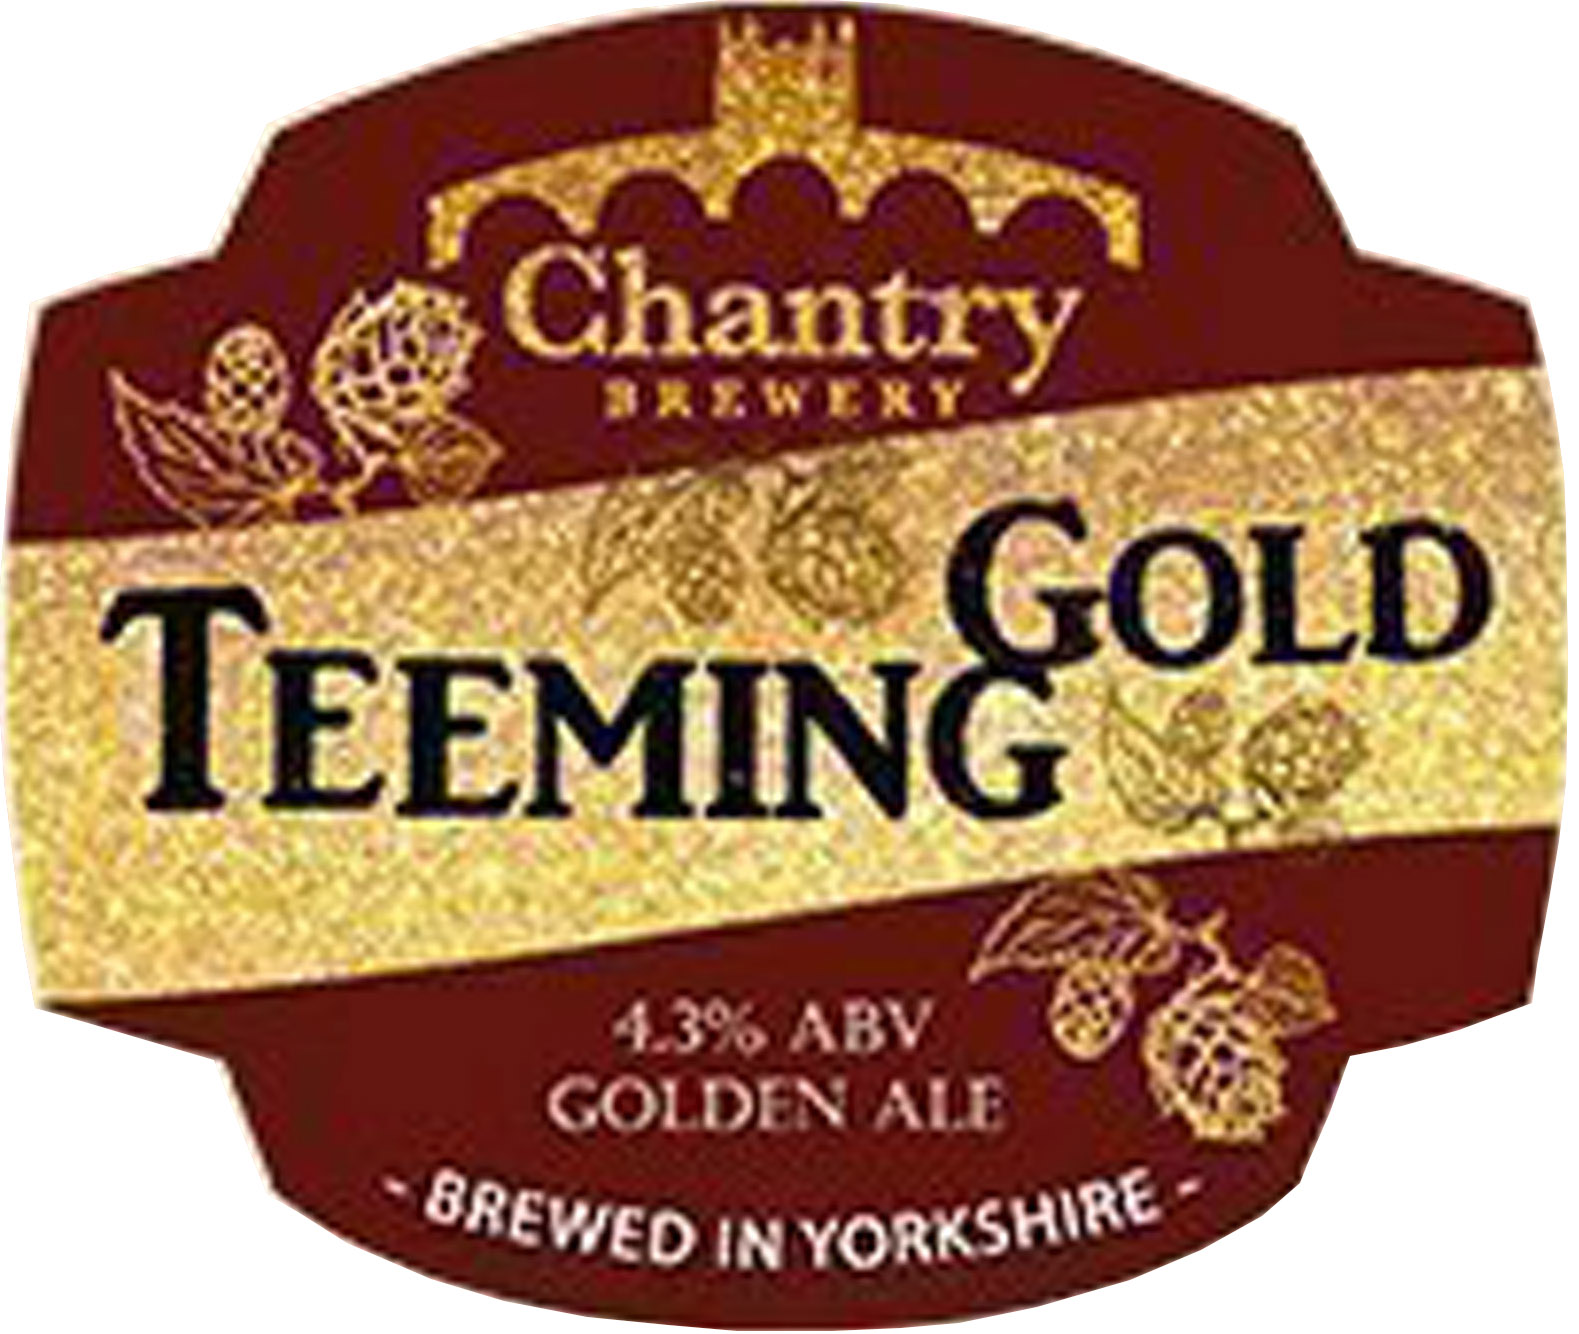 Chantry Brewery Teeming Gold